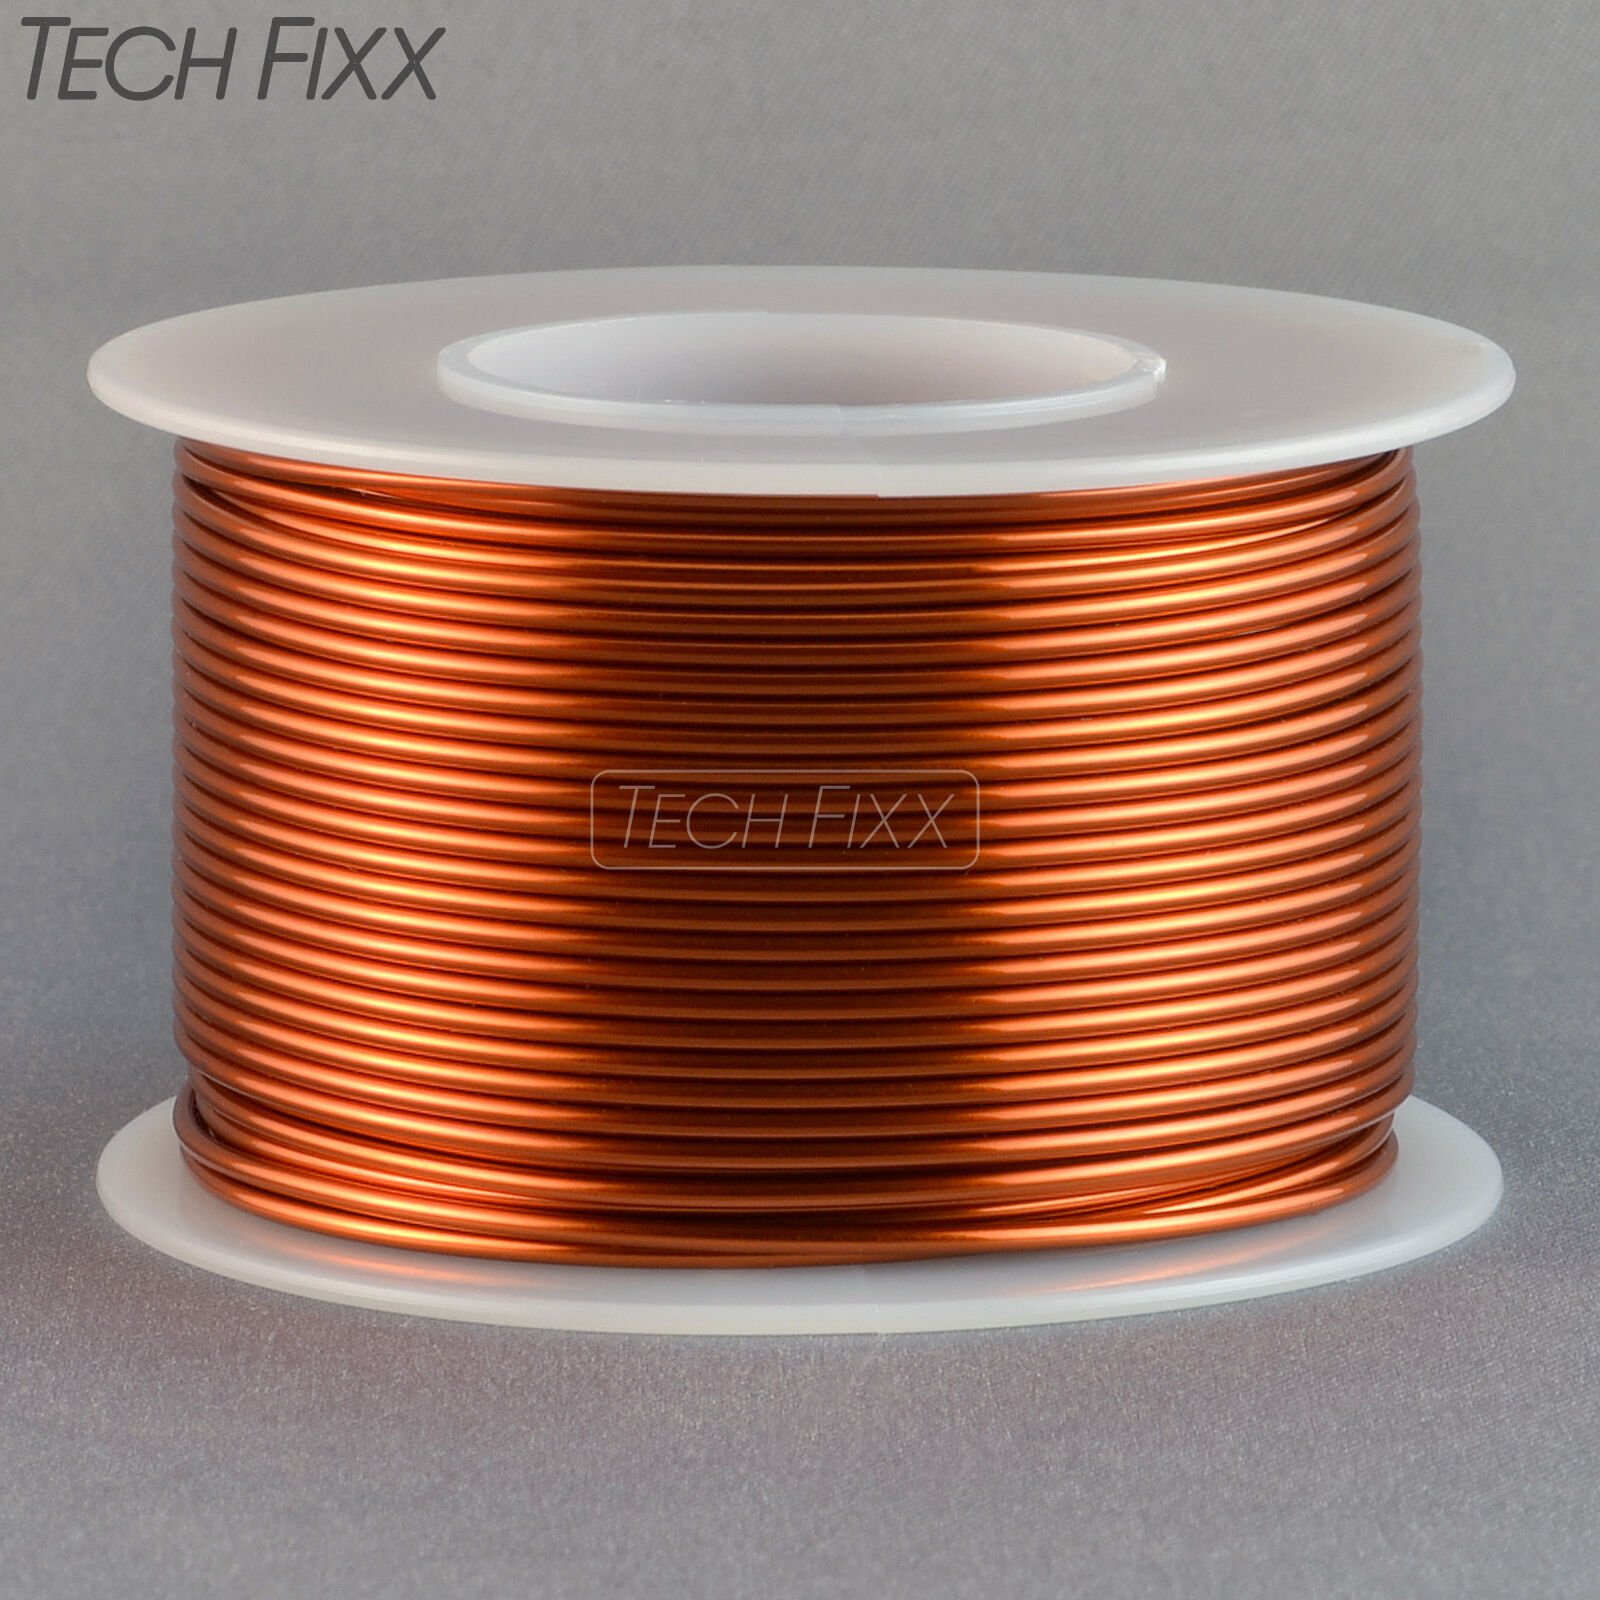 MAGNET WIRE 18 Gauge AWG Enameled Copper 100 Feet Coil Winding and ...